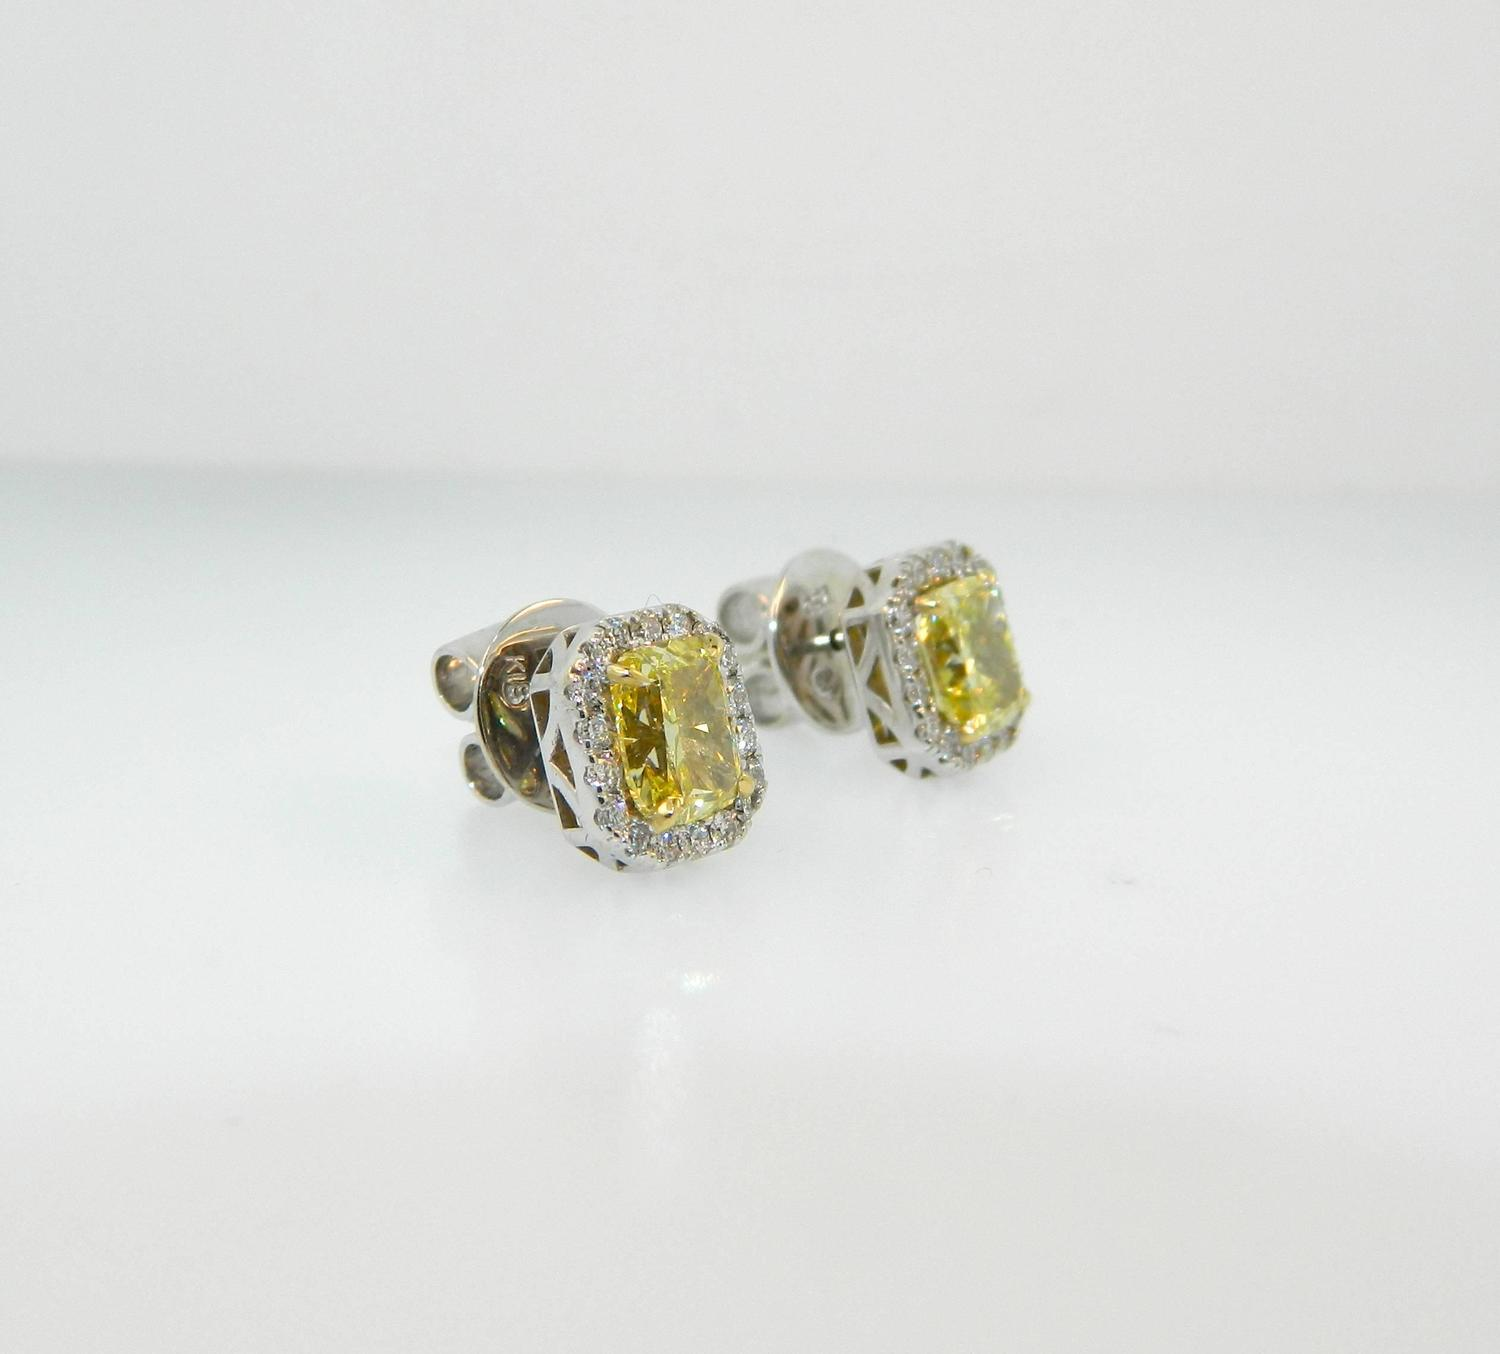 yellow diamond halo earrings - photo #2